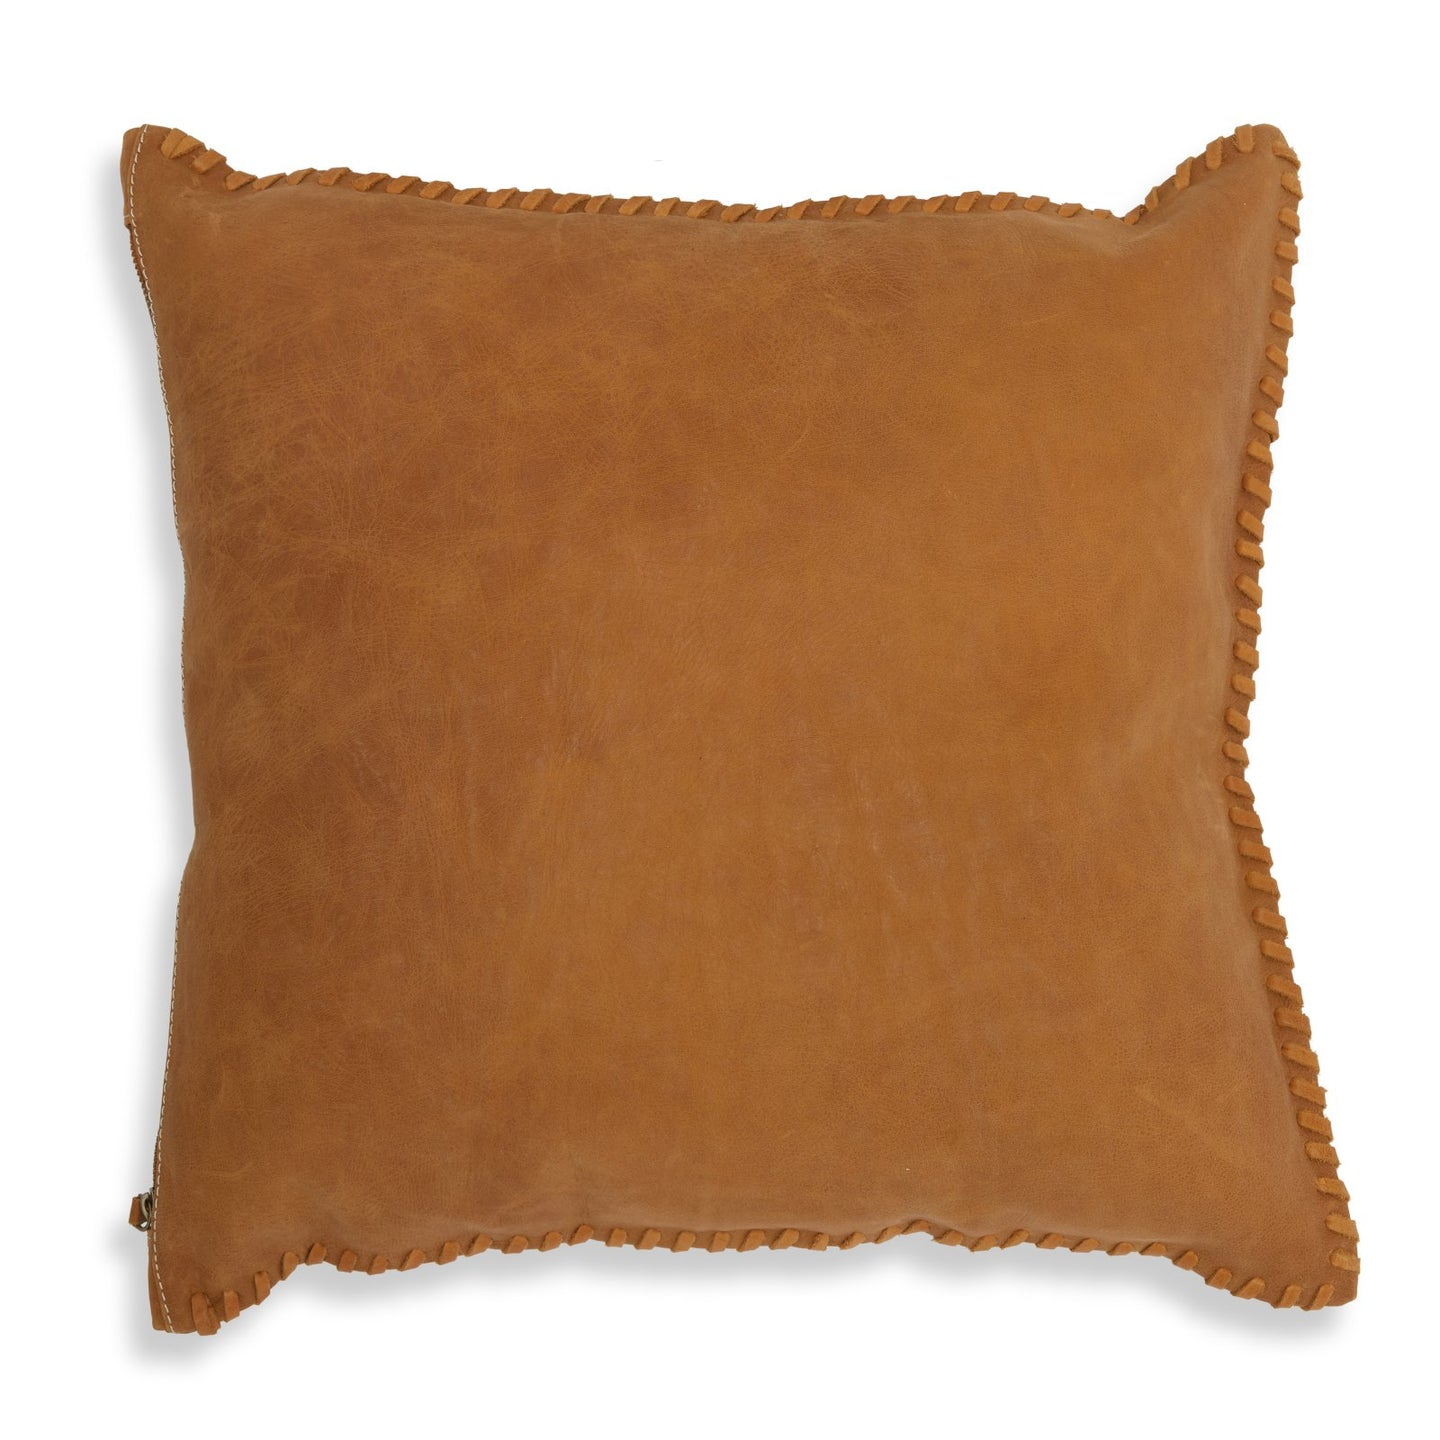 Leather Whip Stitch Pillow